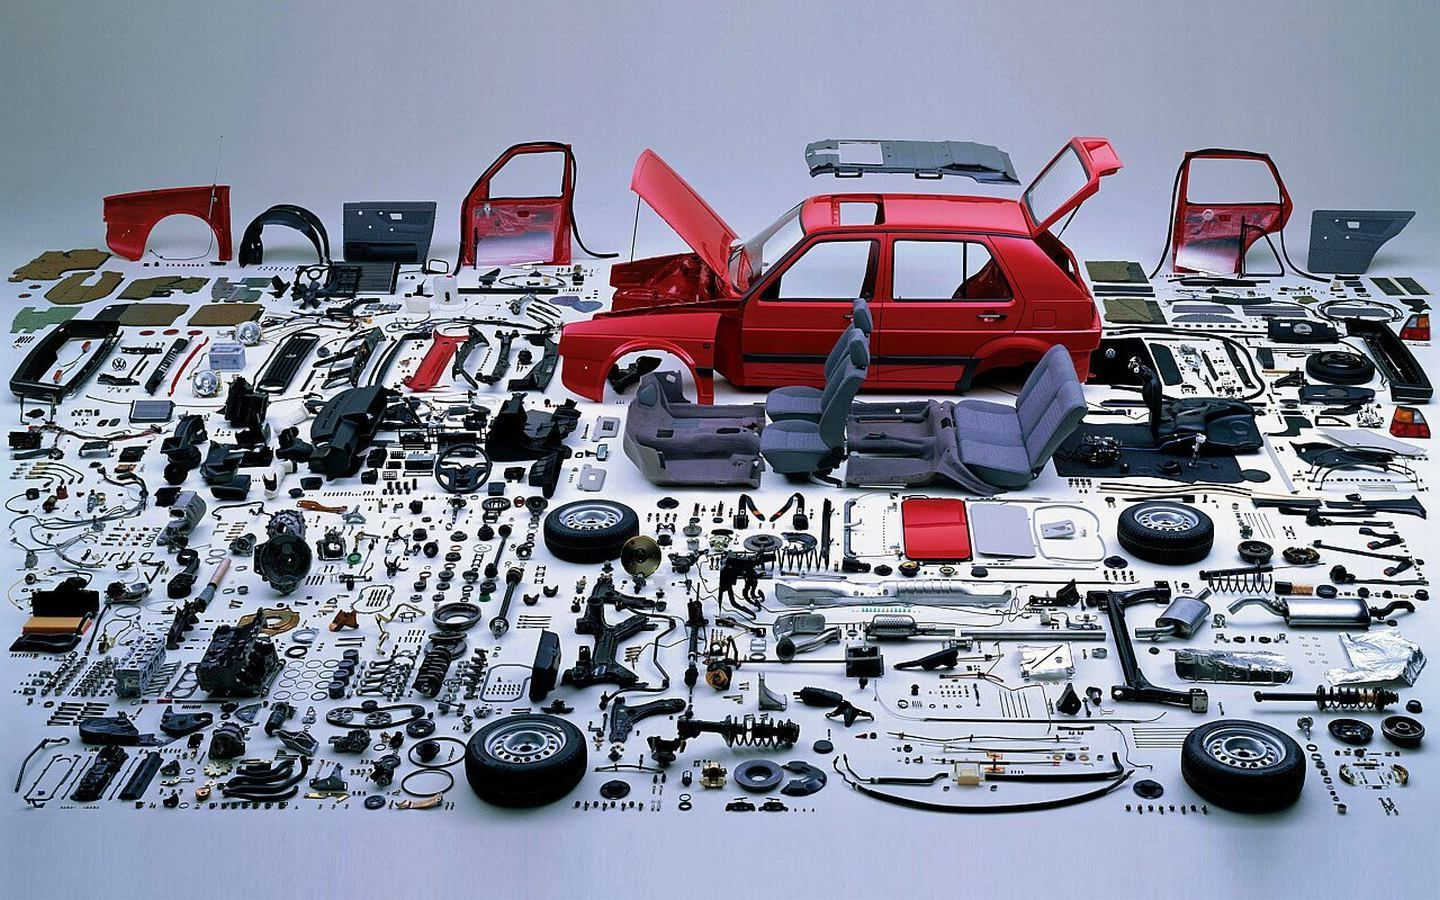 Shop for Steering and Chassis components at Budgetary cost